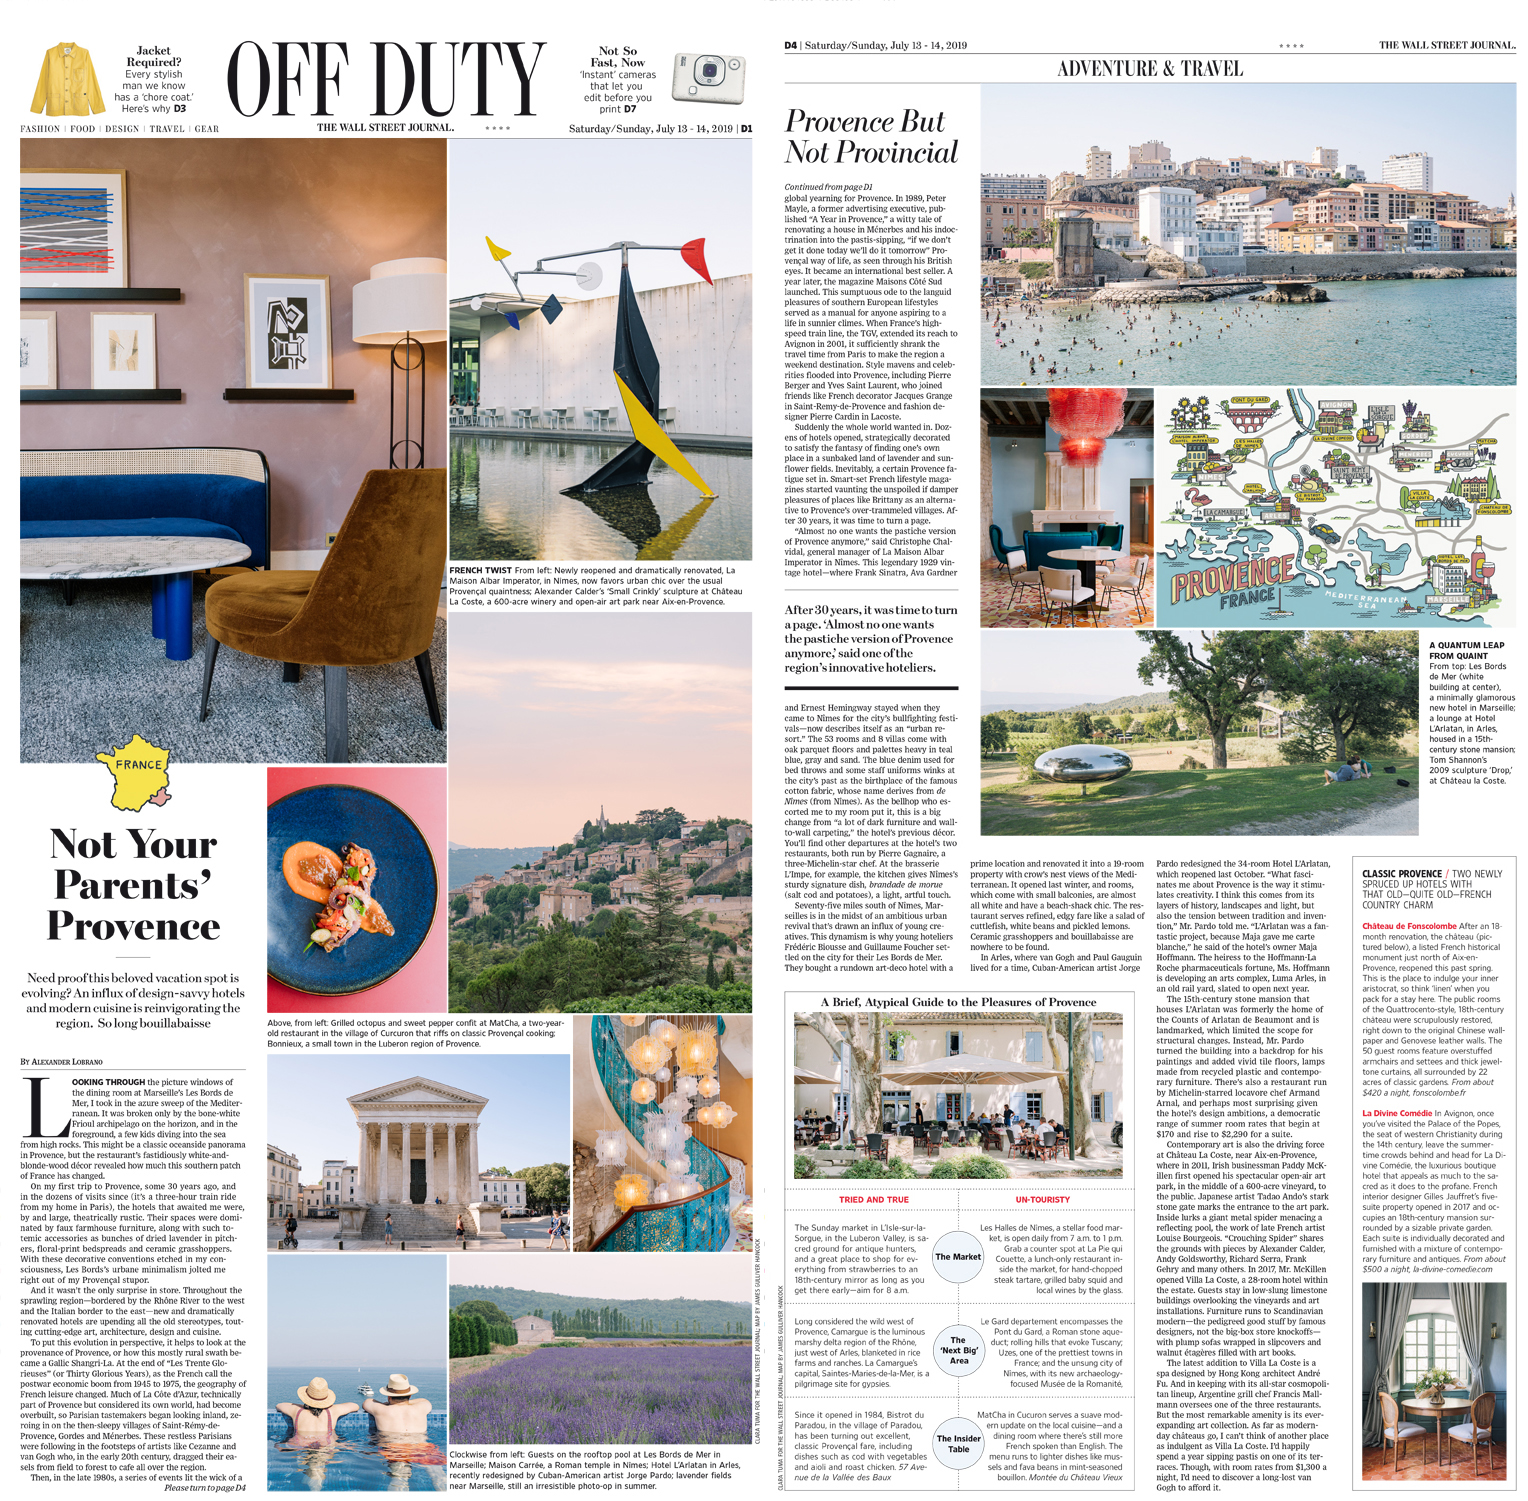 Travel feature on Provence for The Wall Street Journal - Off Duty